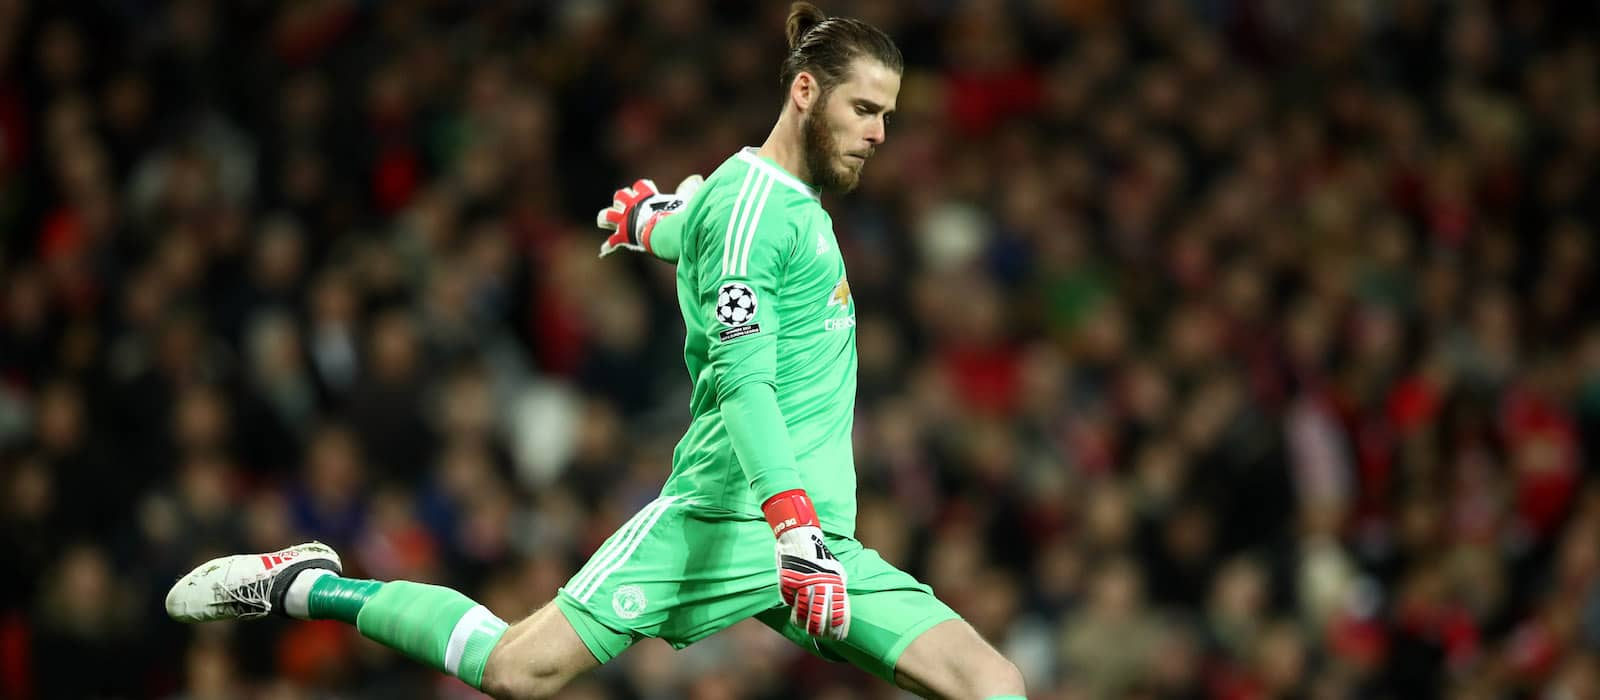 Luke Shaw: Everybody loves David de Gea at Manchester United